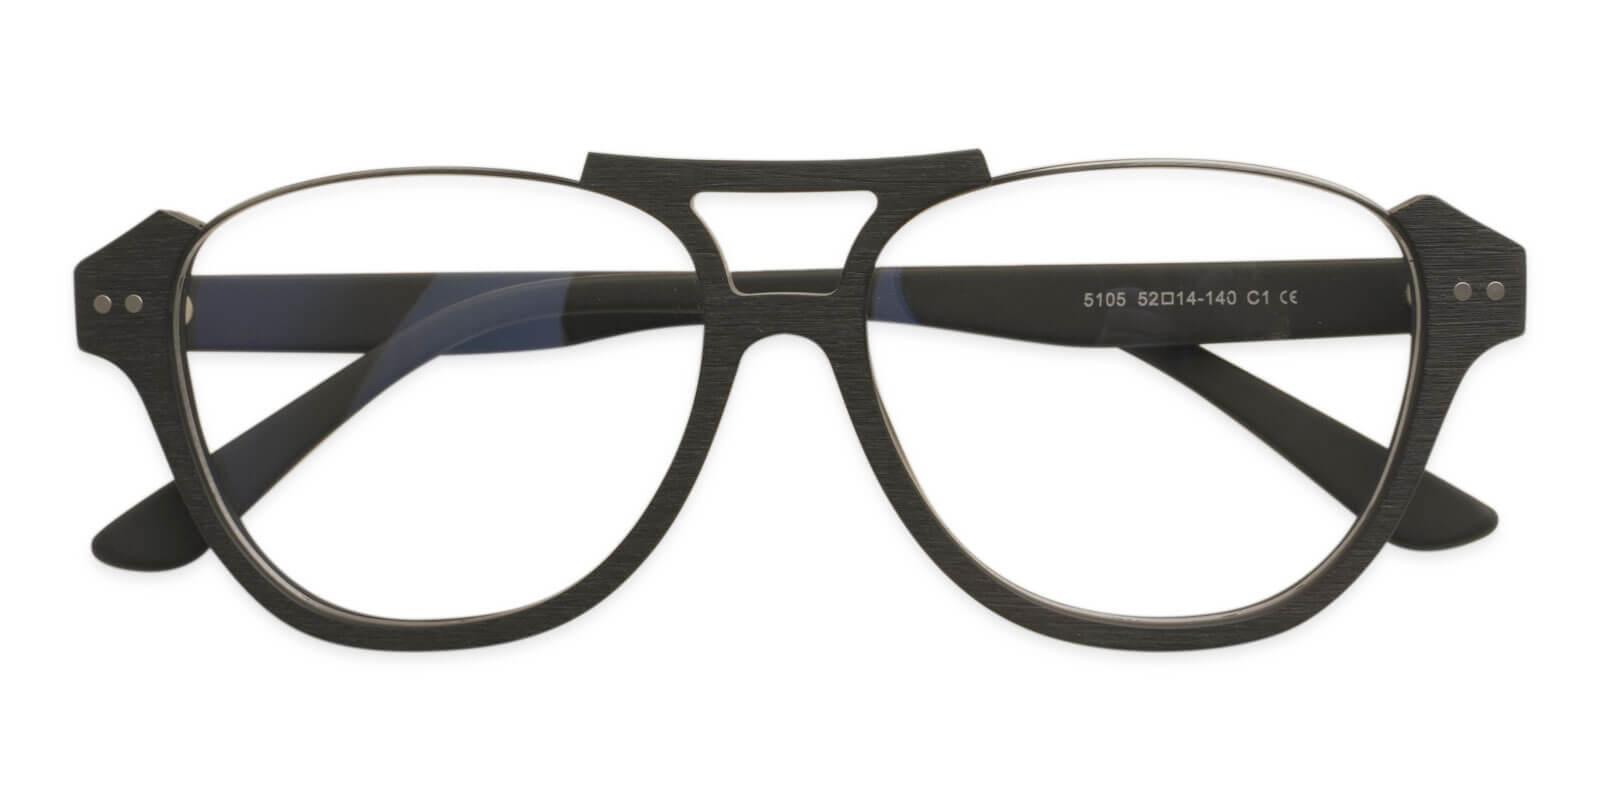 Ocean Gate Black Combination Eyeglasses , UniversalBridgeFit Frames from ABBE Glasses